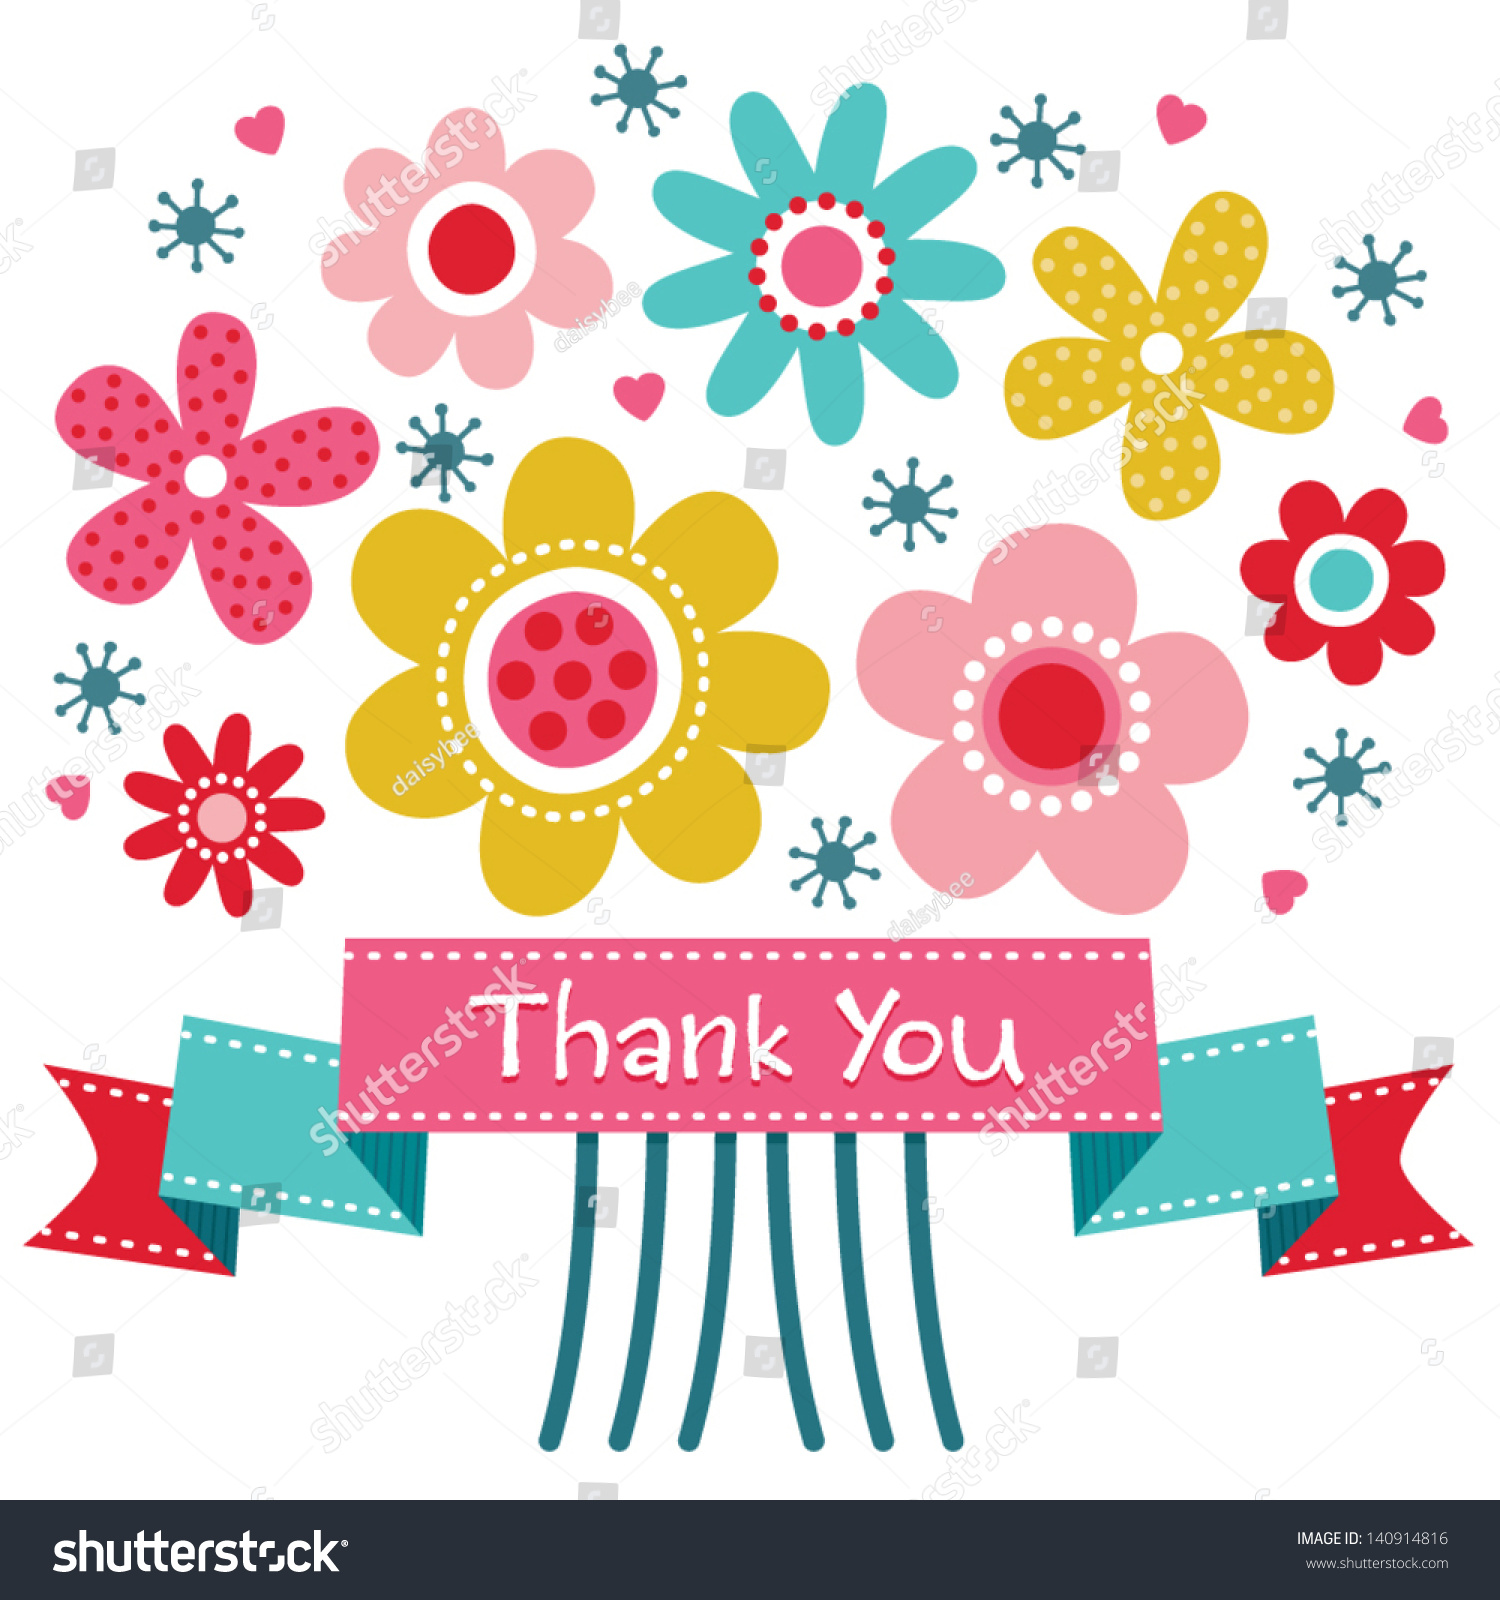 Vector thank you card retro style stock vector 140914816 shutterstock vector thank you card with retro style flower posy and vintage ribbon banner also great izmirmasajfo